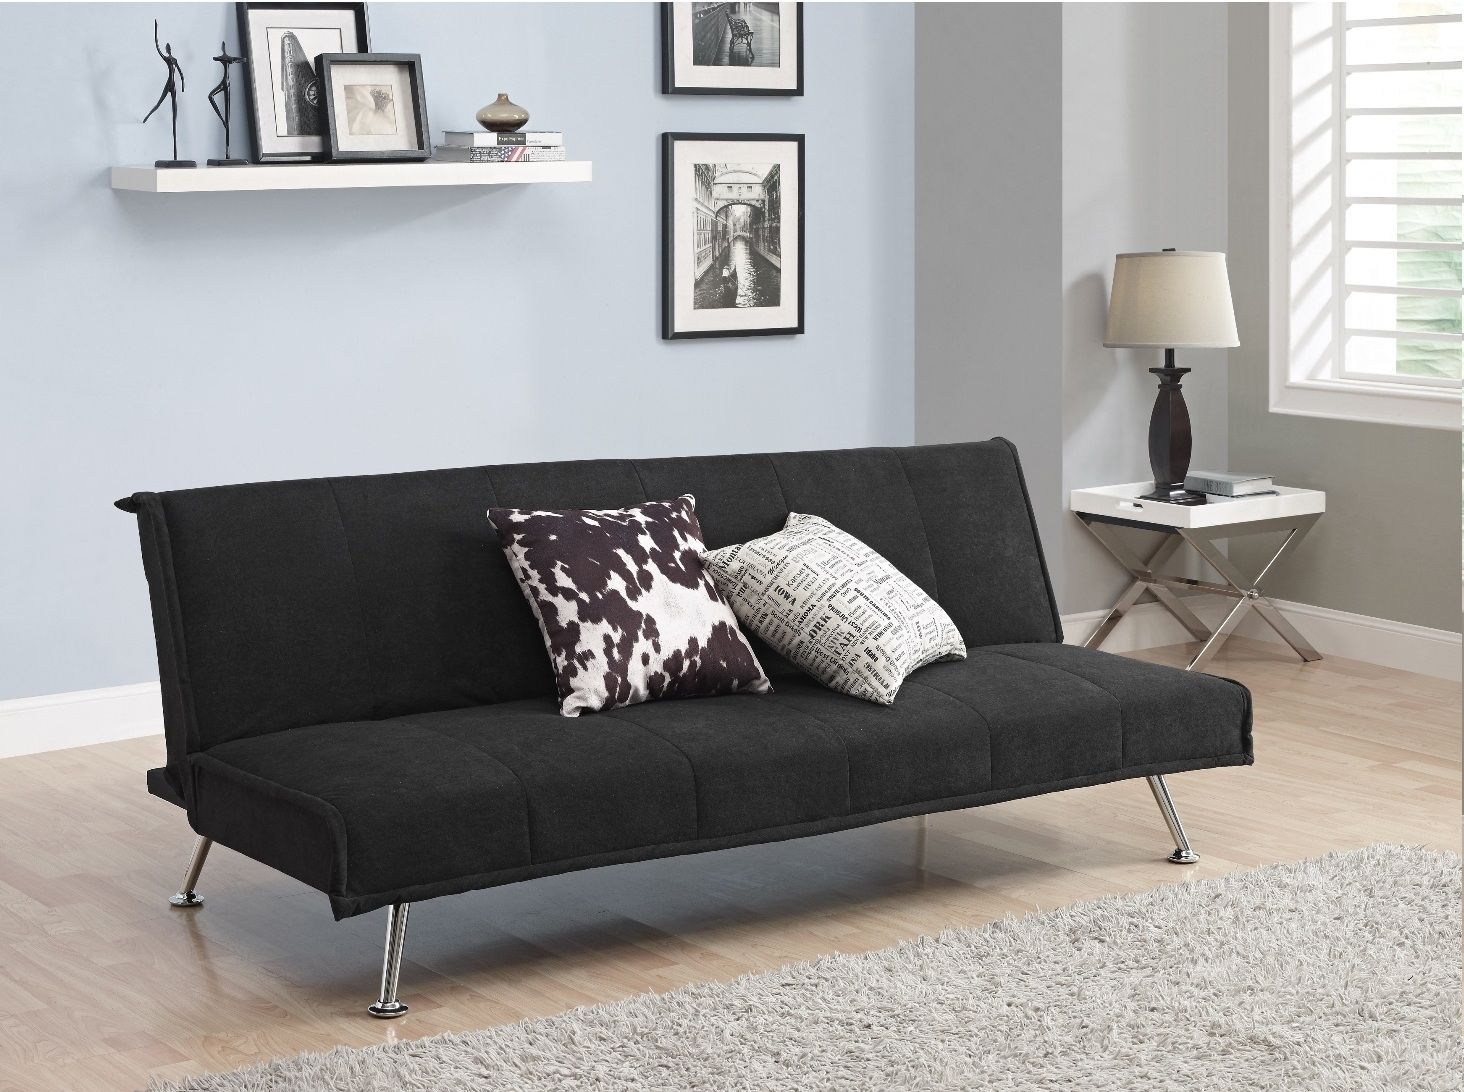 black leather living room furniture sets%0A      comfortable futon sofa bed ideal choice for modern homes